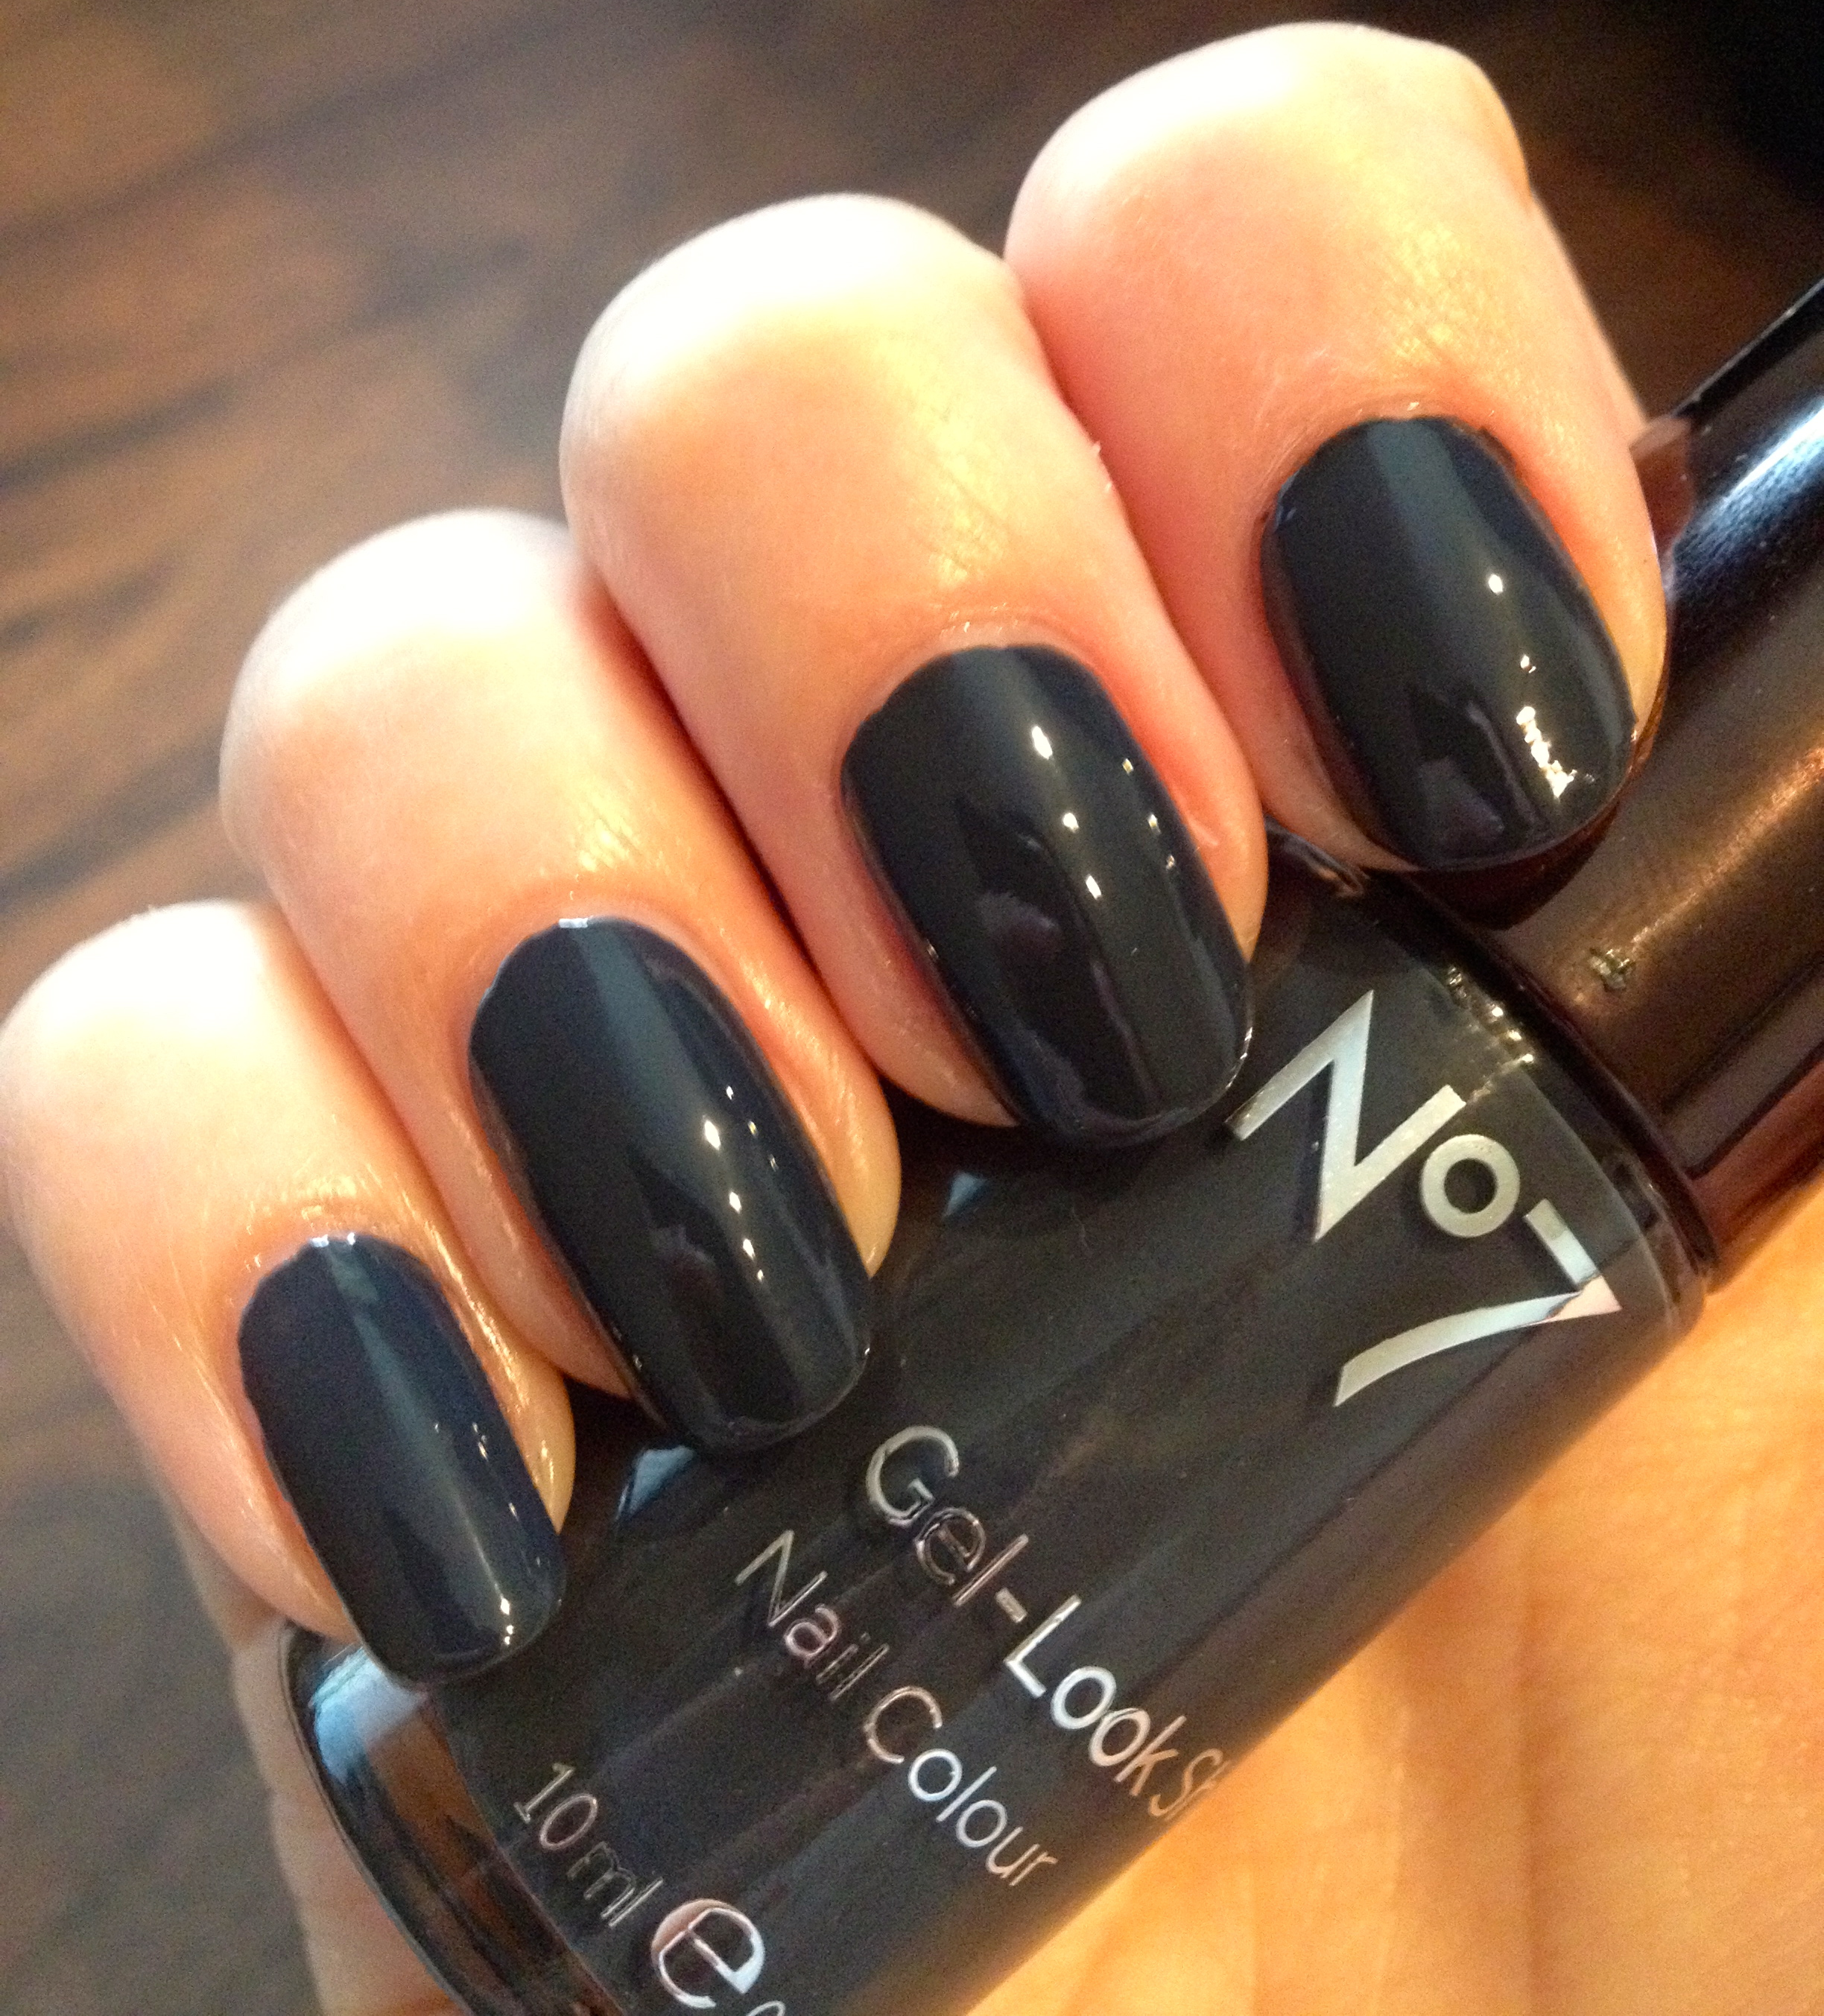 No7 Gel Look Shine Nail Colour Joeyanne Nails